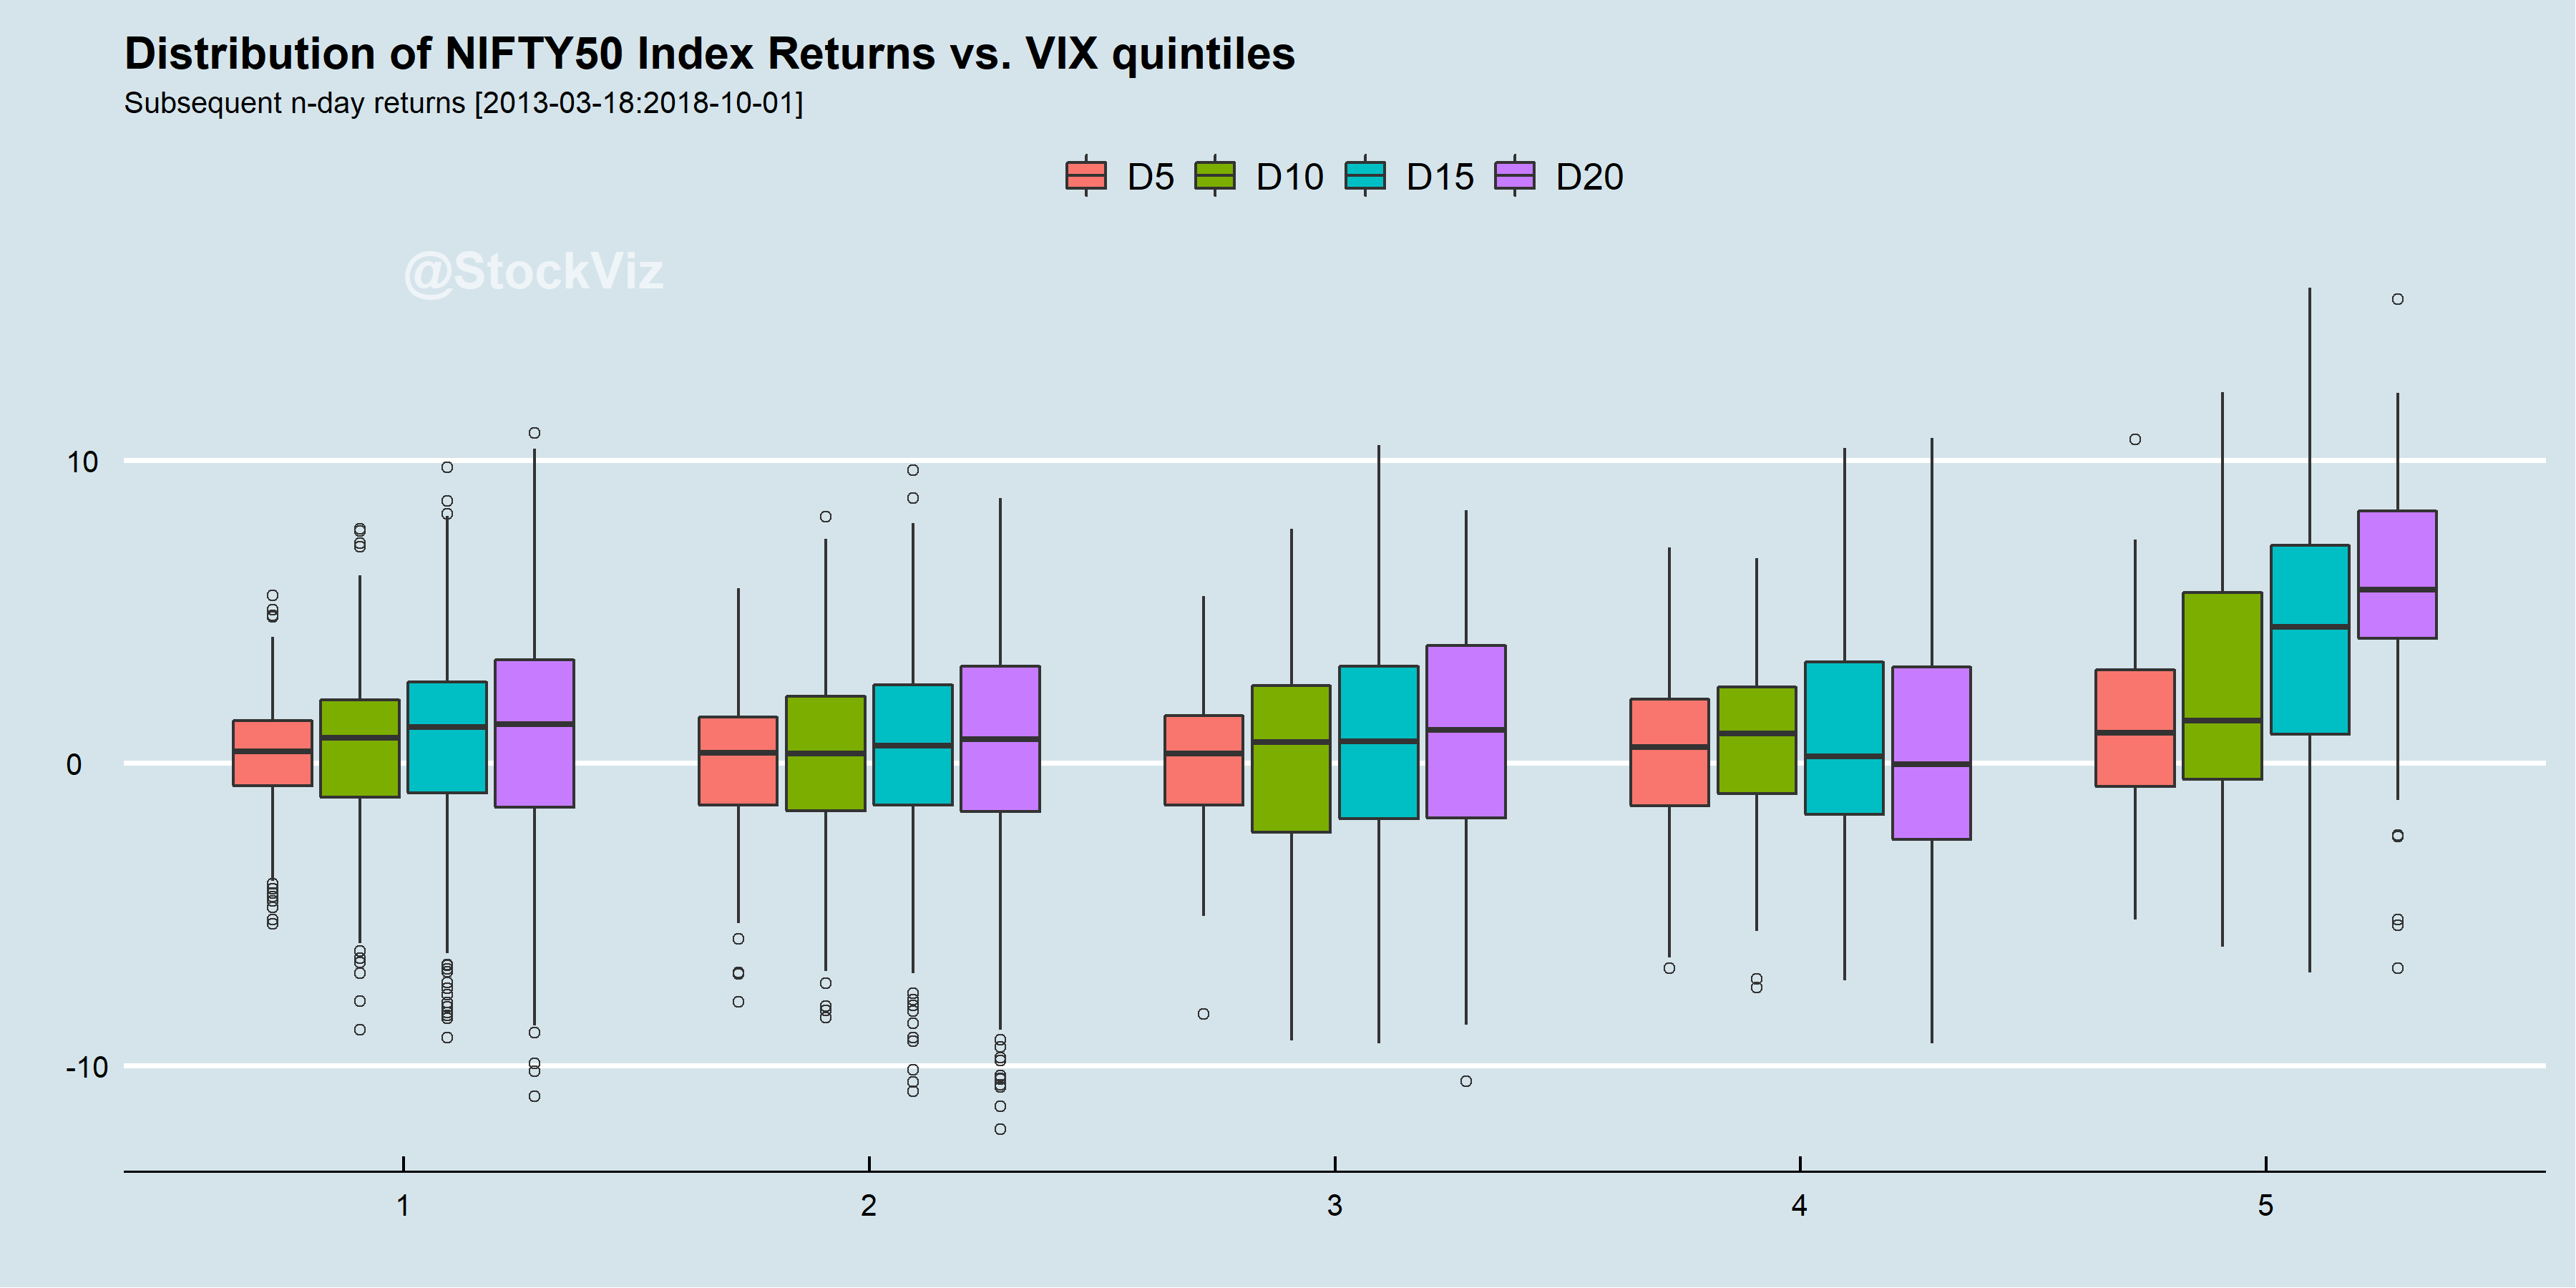 NIFTY 50 returns over India VIX quintiles